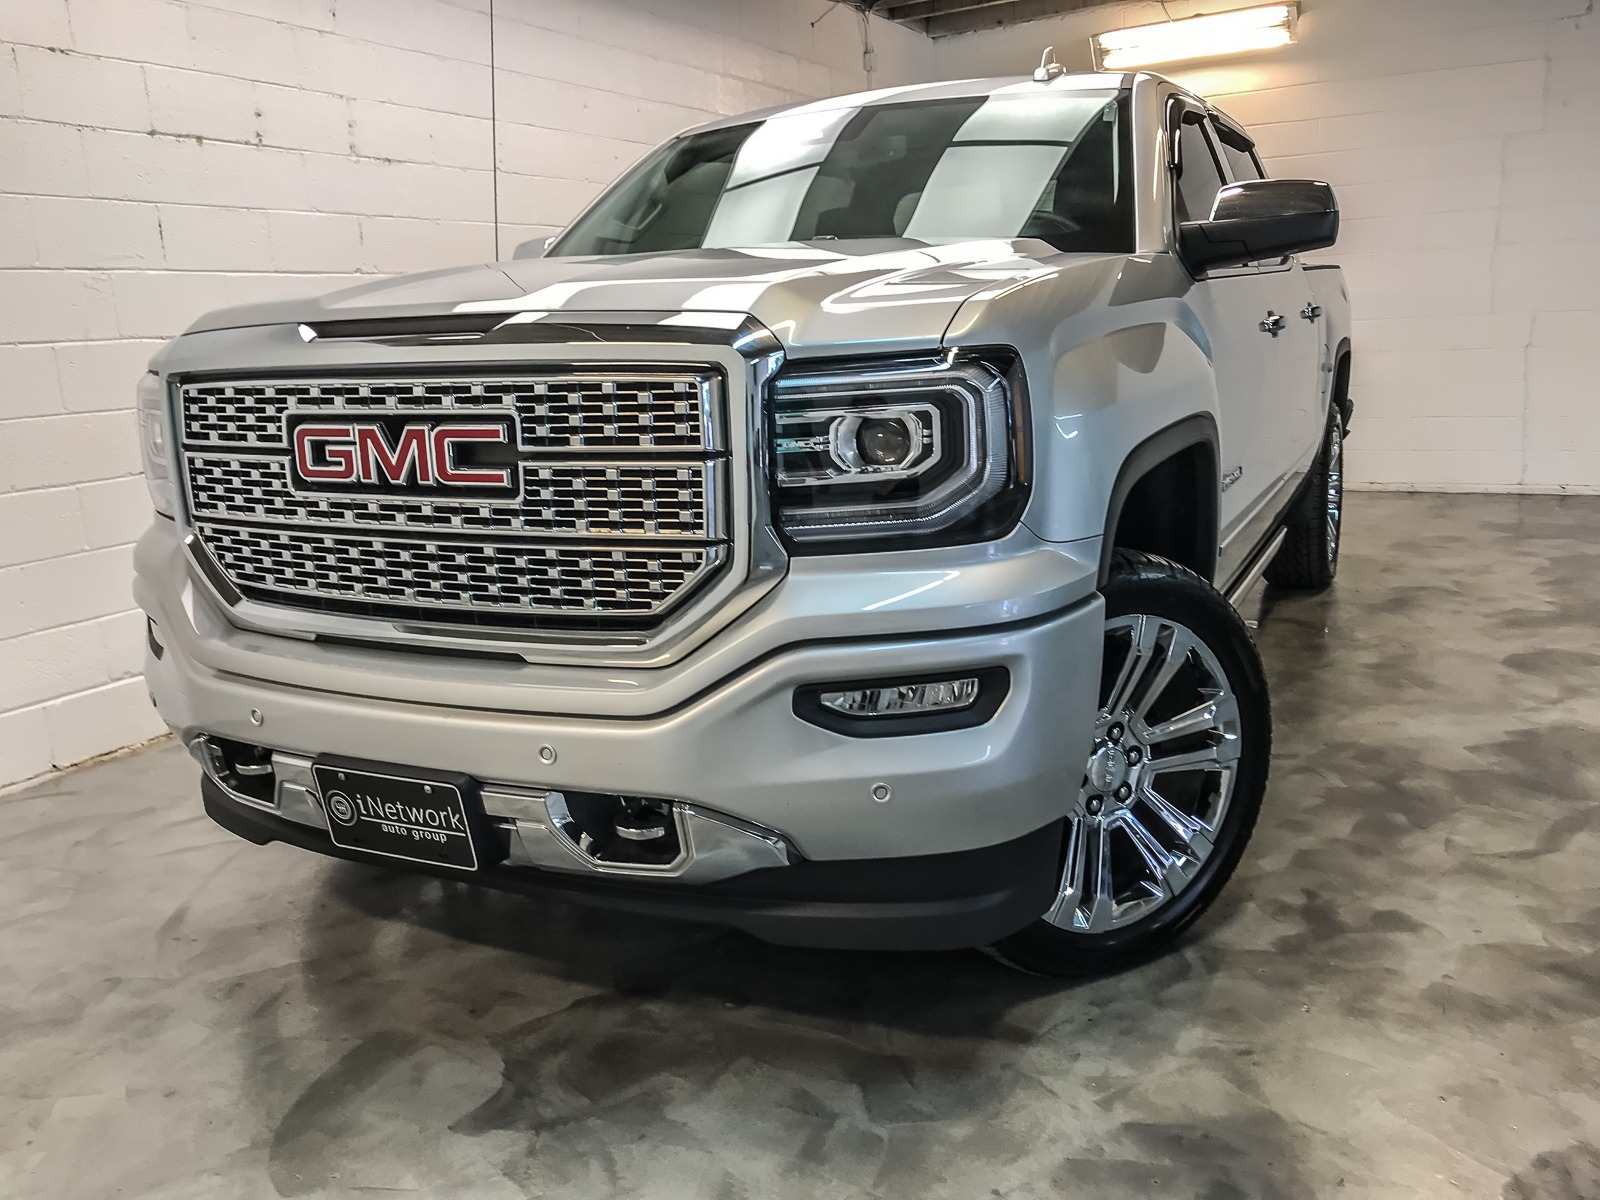 Used 2018 Gmc Sierra 1500 Denali For Sale 44 991 Inetwork Auto Group Stock T178346